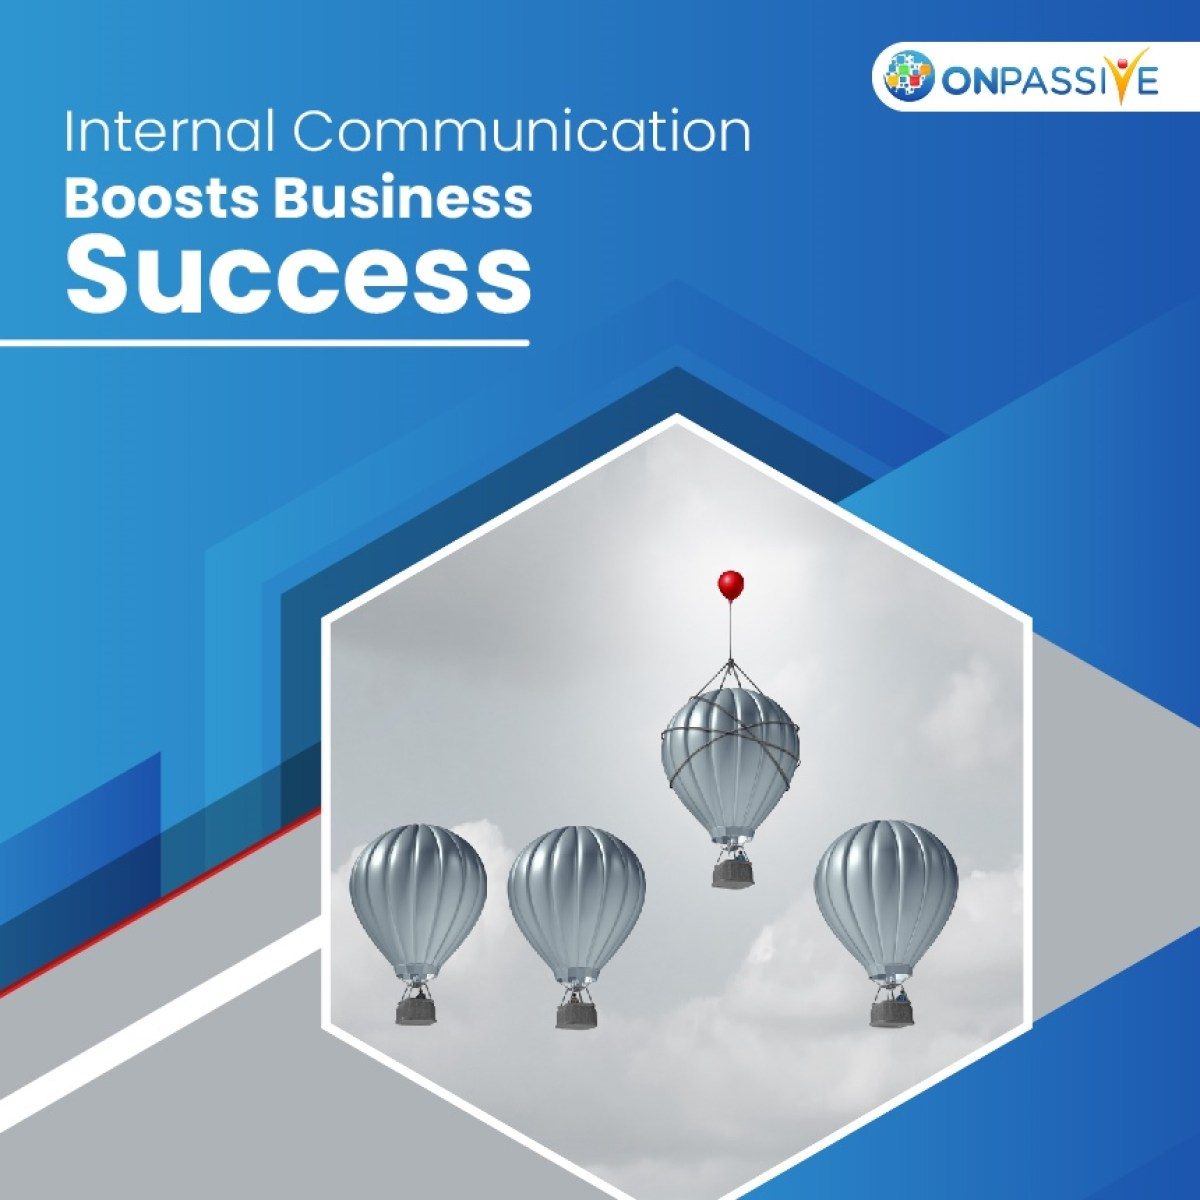 5 Reasons Why Internal Communication is Critical For Business Success